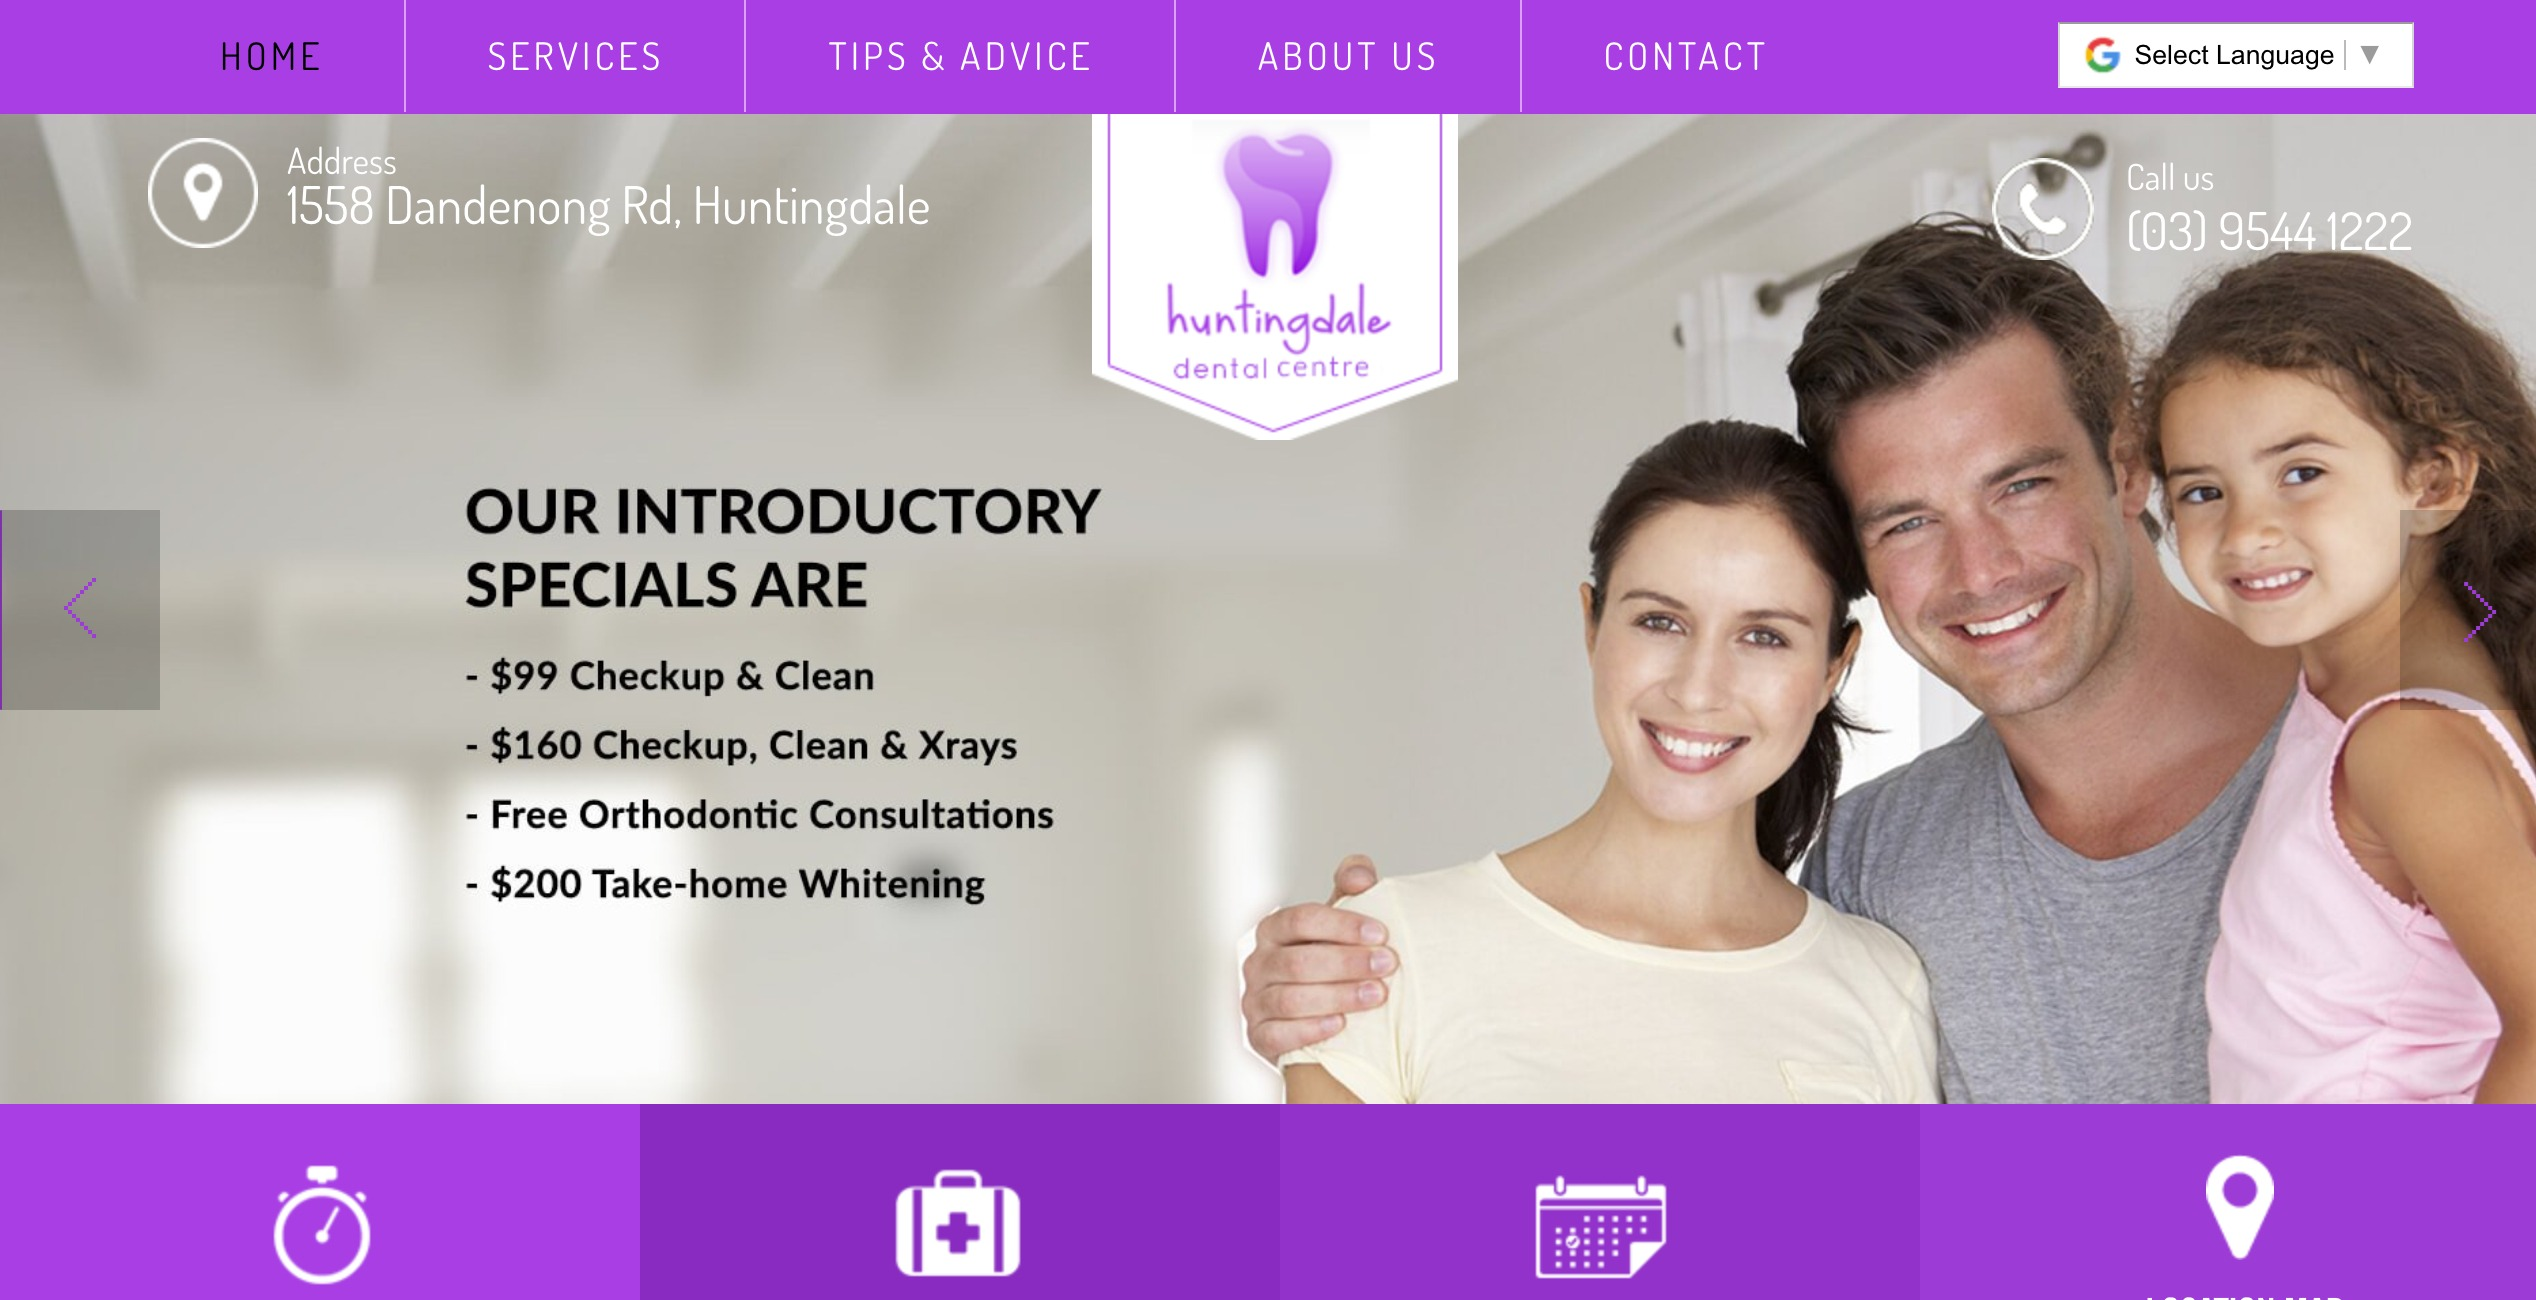 huntingdale dental centre website - weblium